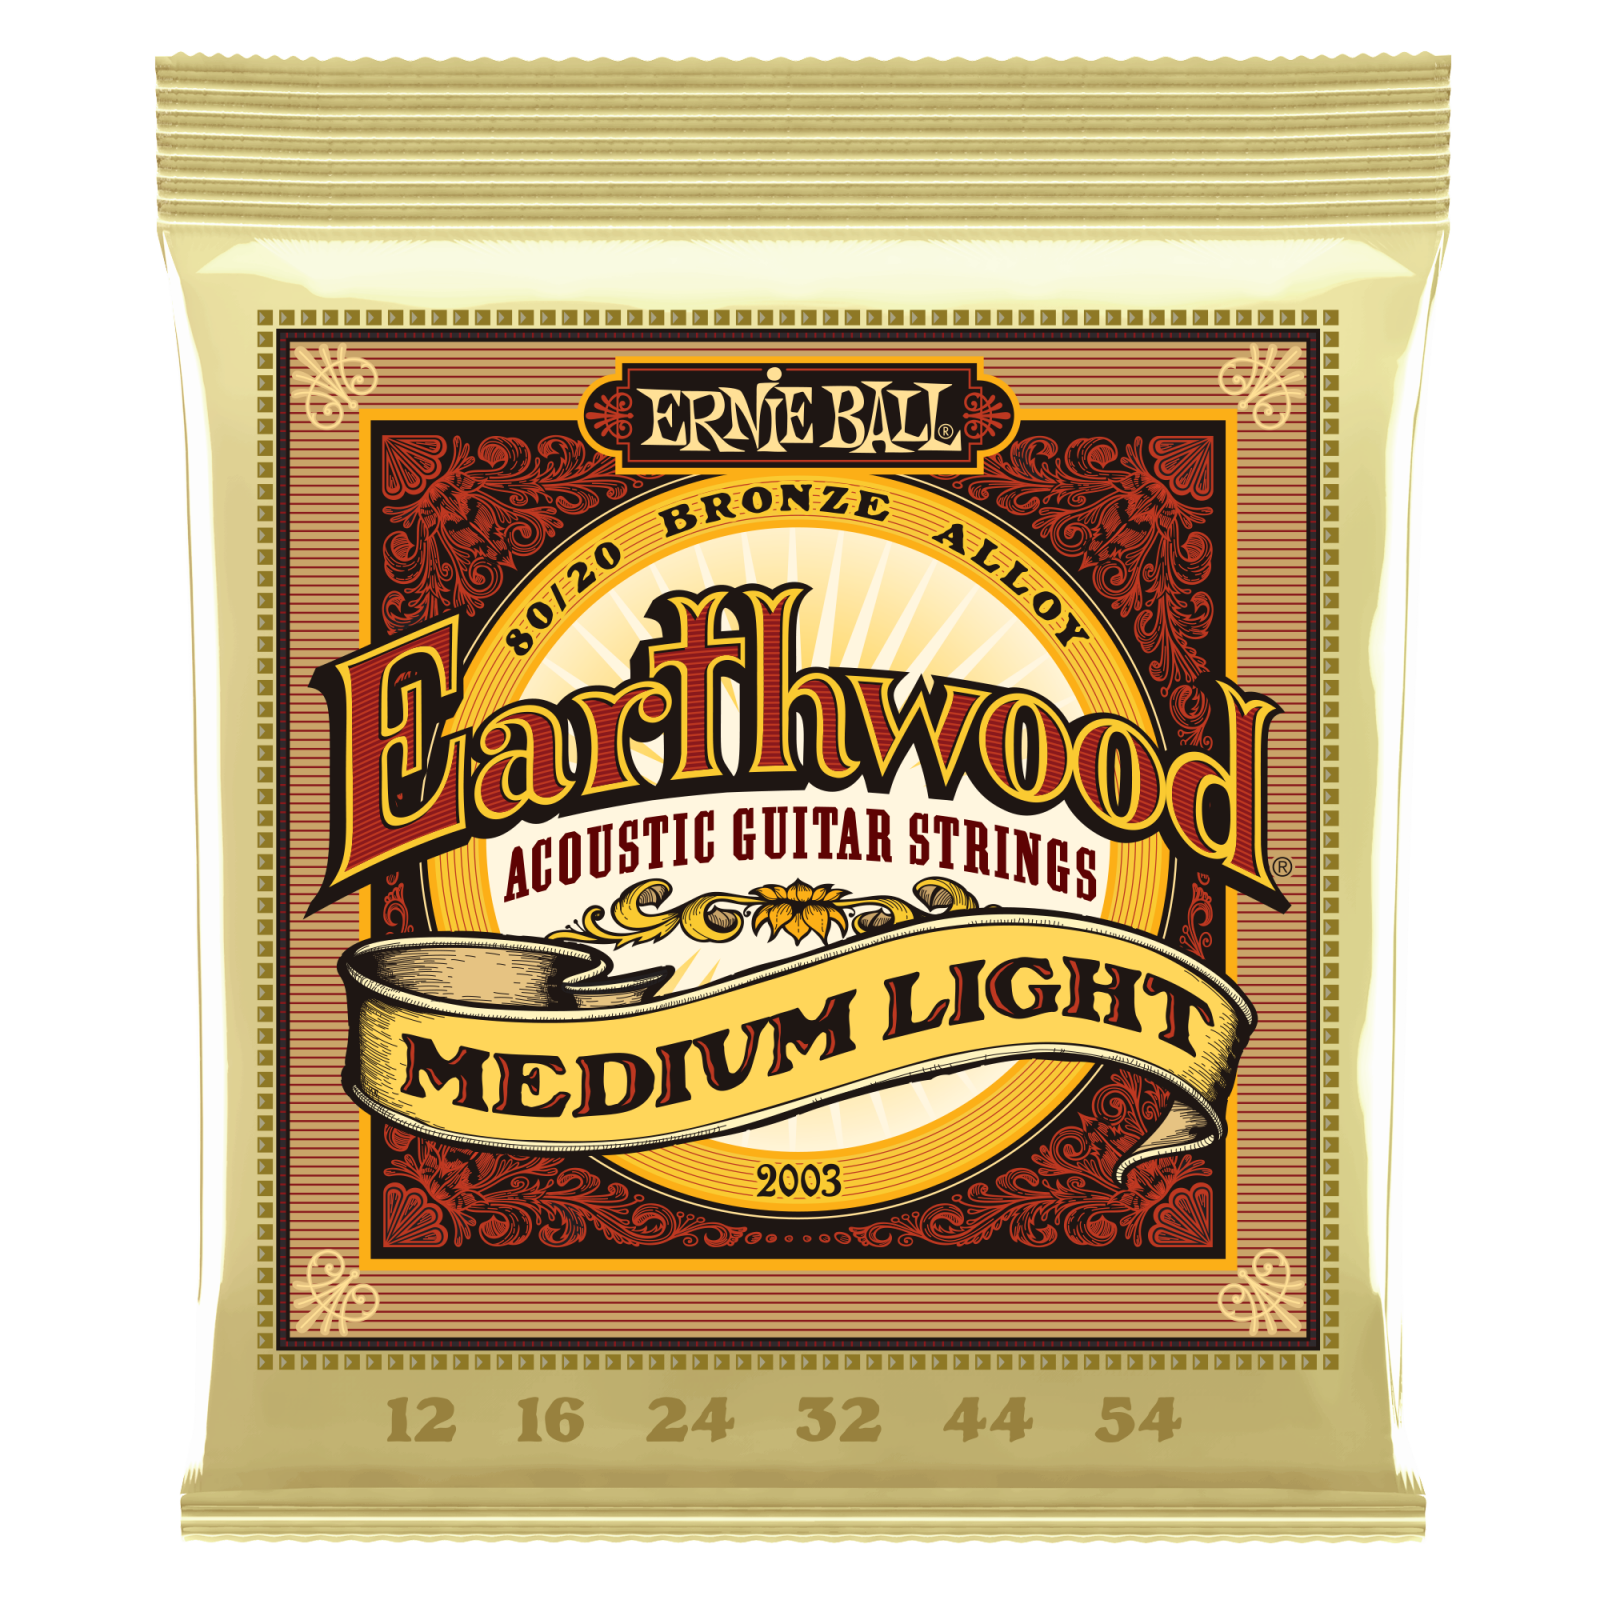 Ernie Ball Earthwood Acoustic Guitar Strings - Medium Light Gauge